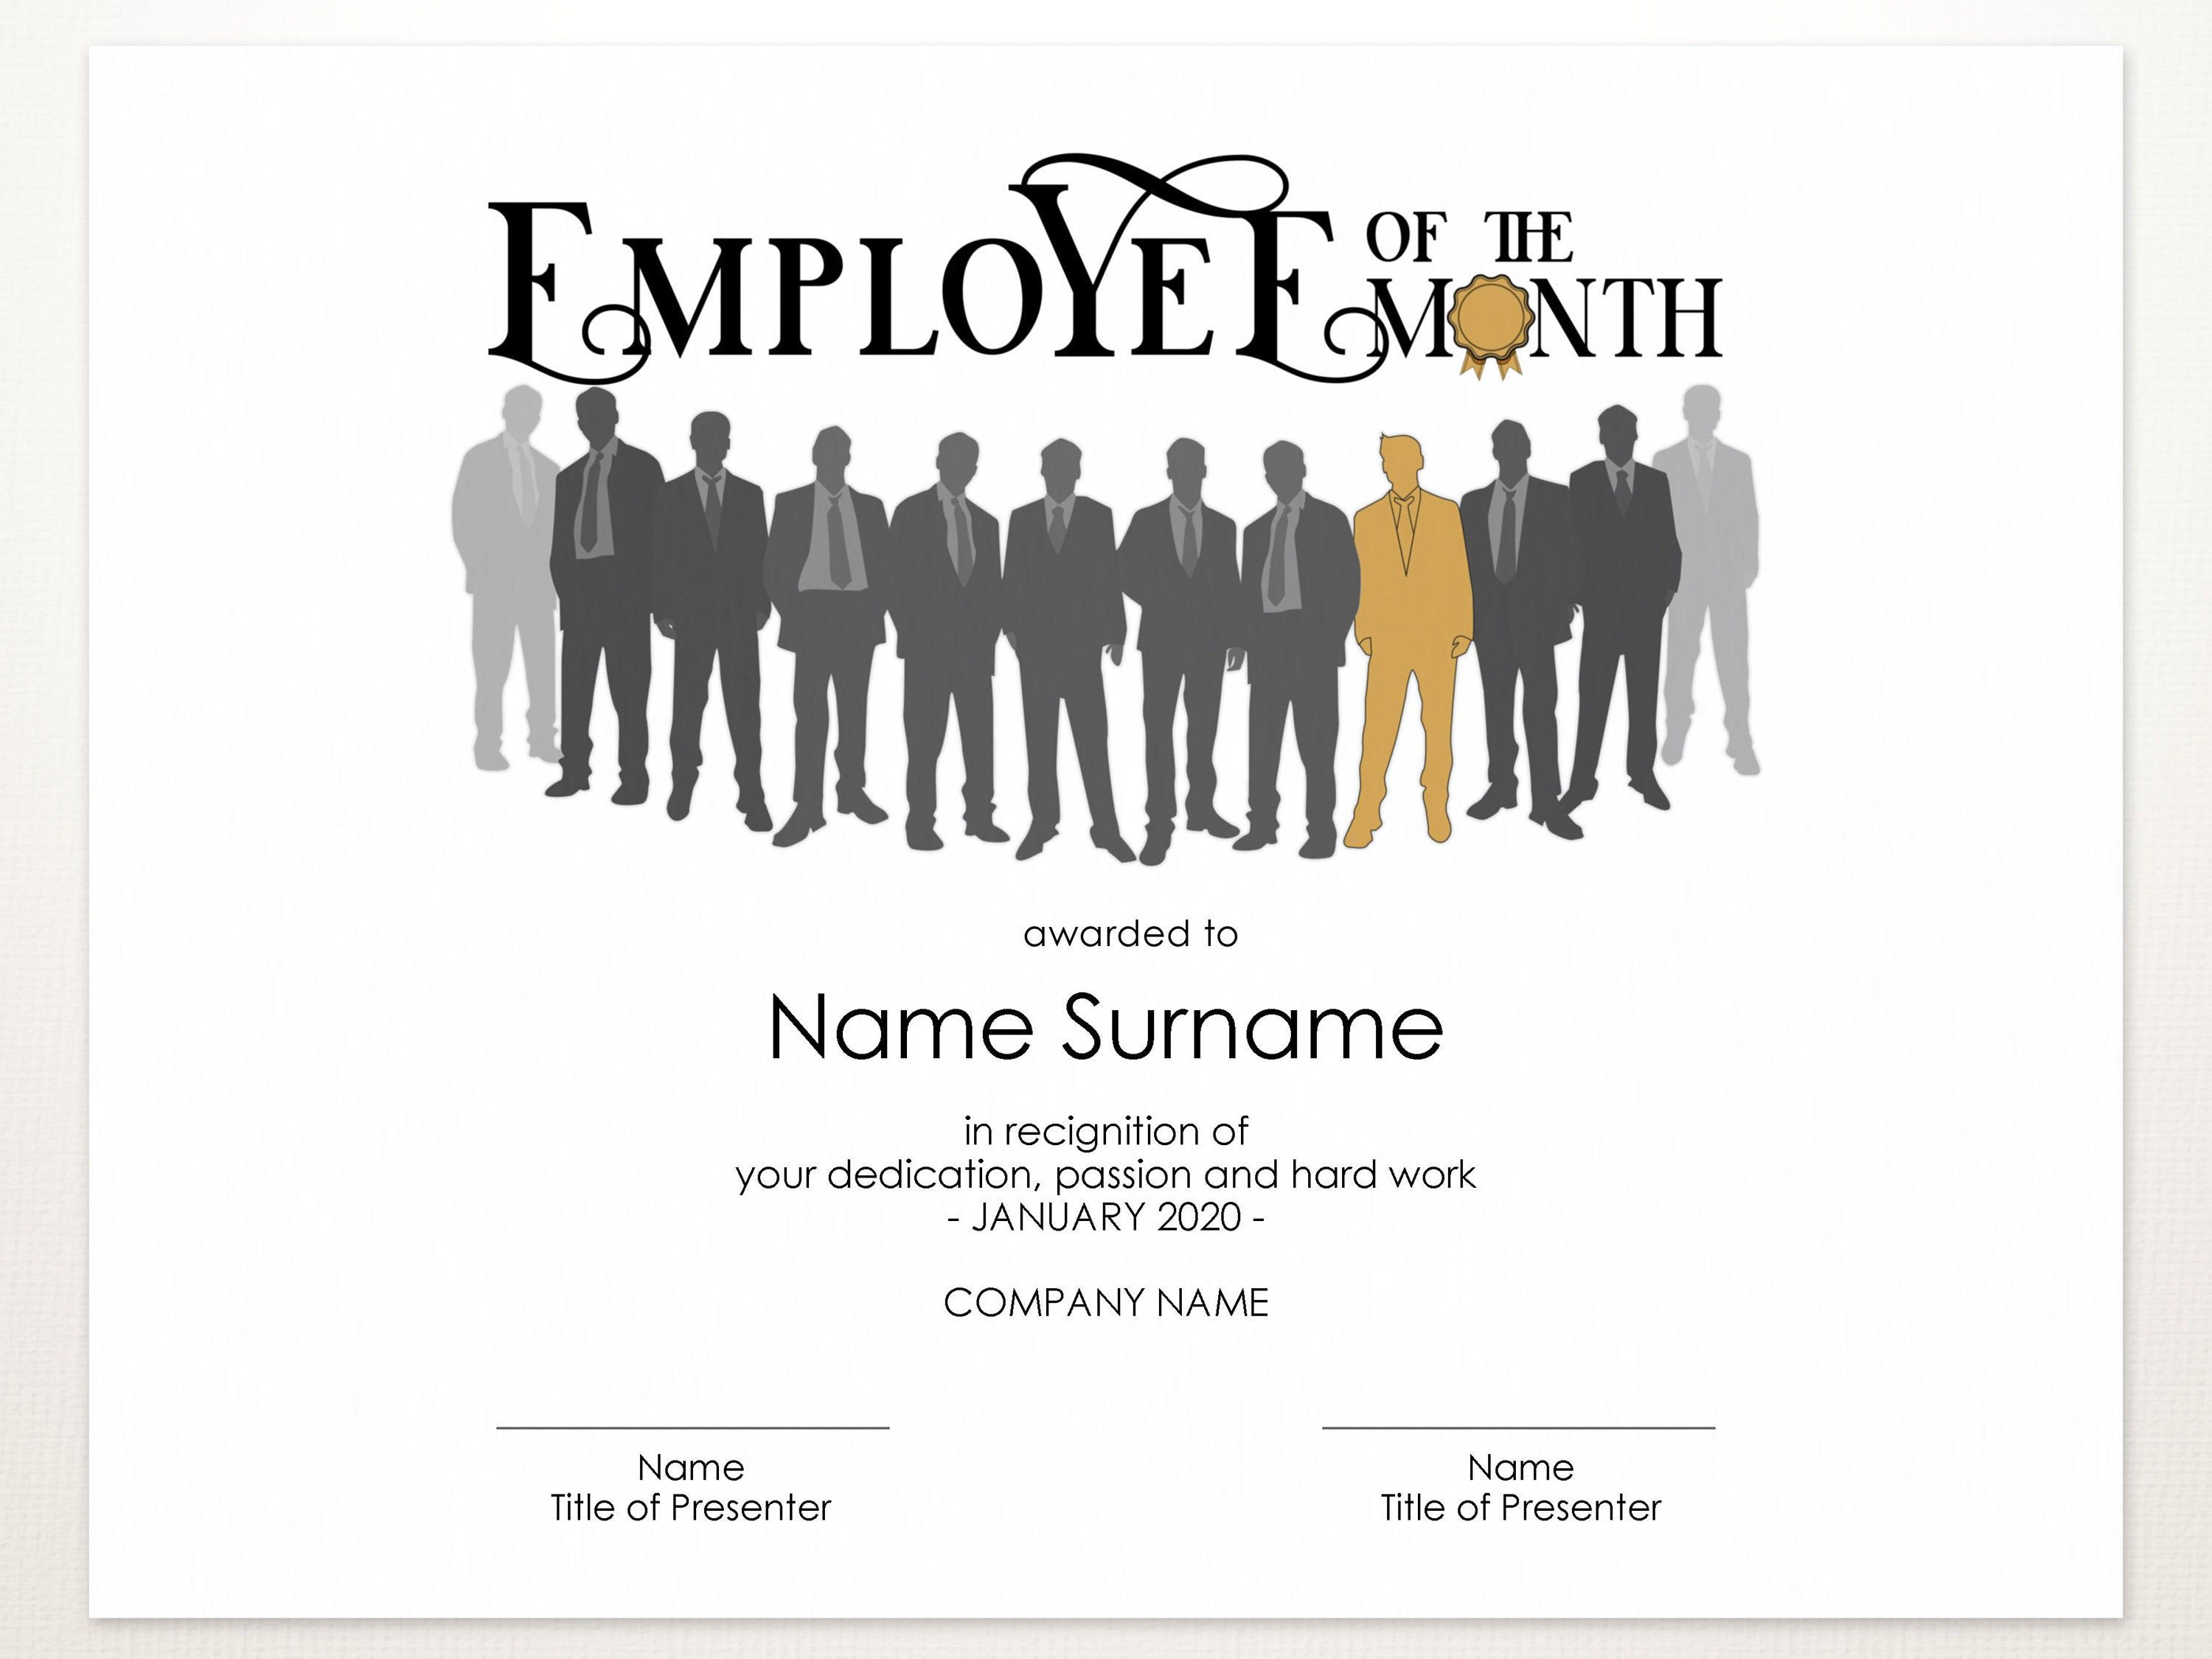 Employee Of The Month Editable Template Printable Award Etsy In 2021 Editable Template Template Printable Certificate Template